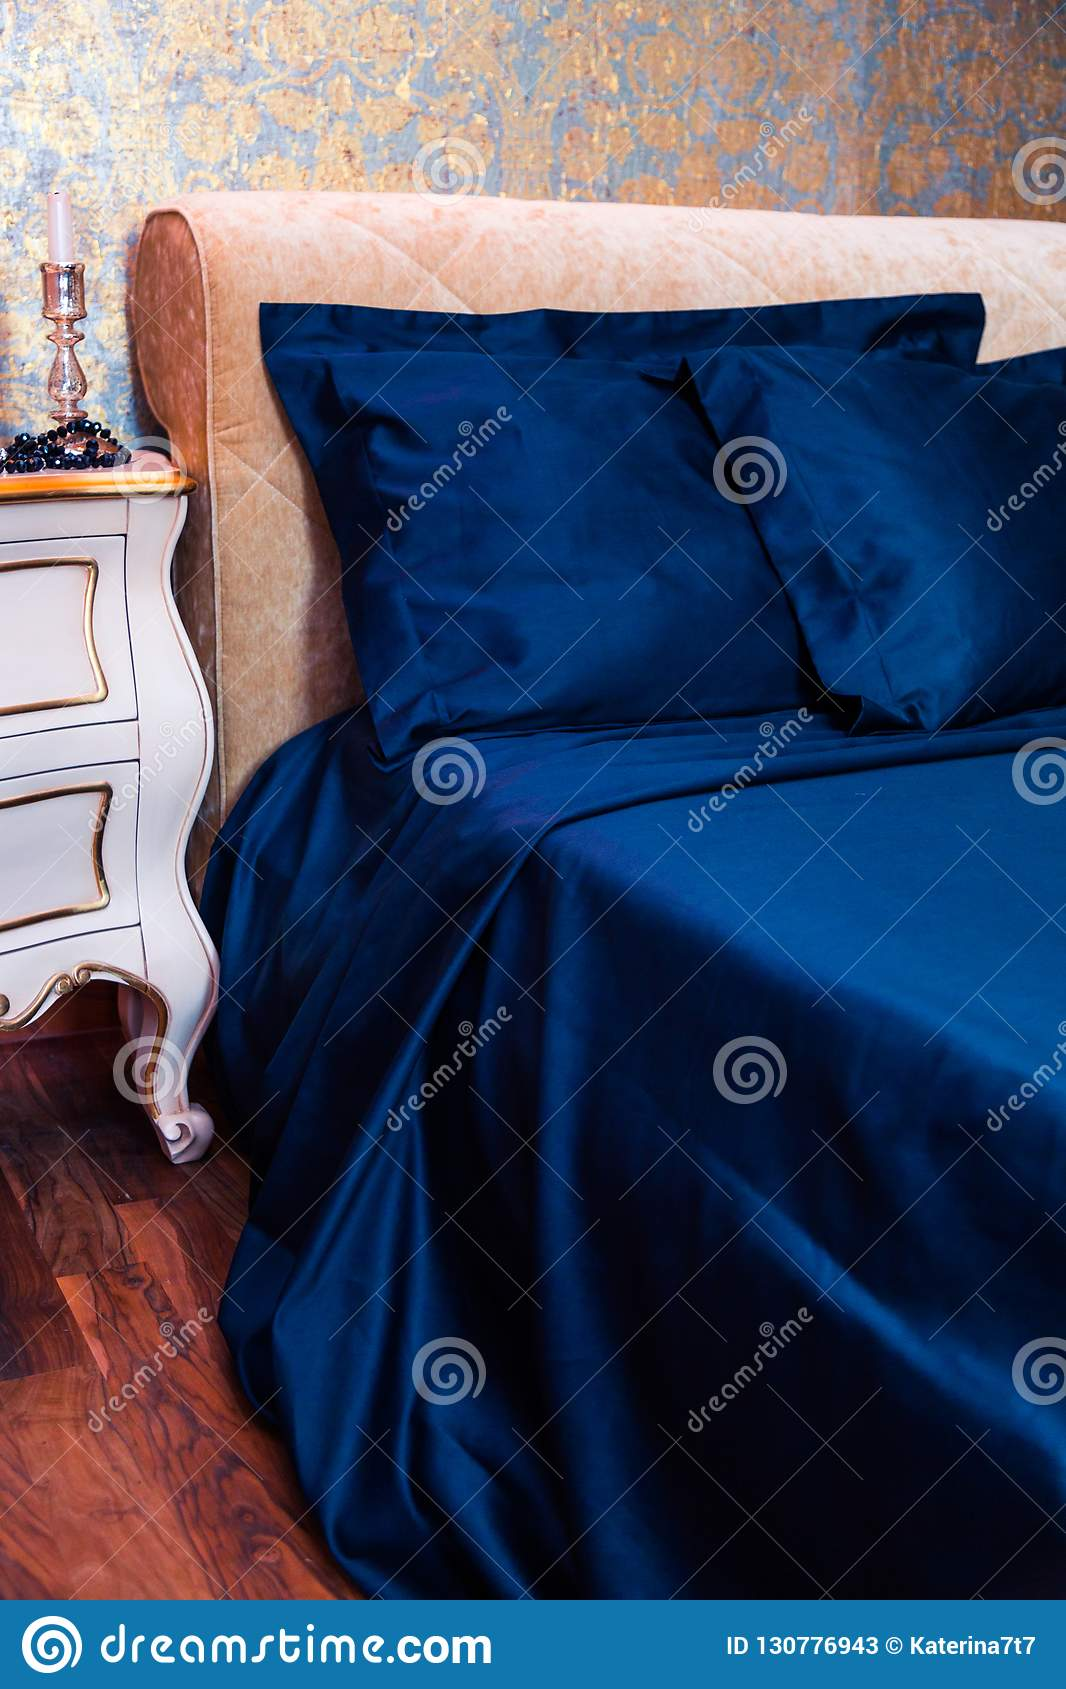 Beautiful Bedding On The Bed With Ornaments And A Bedside Table Stock Image Image Of Background Interior 130776943